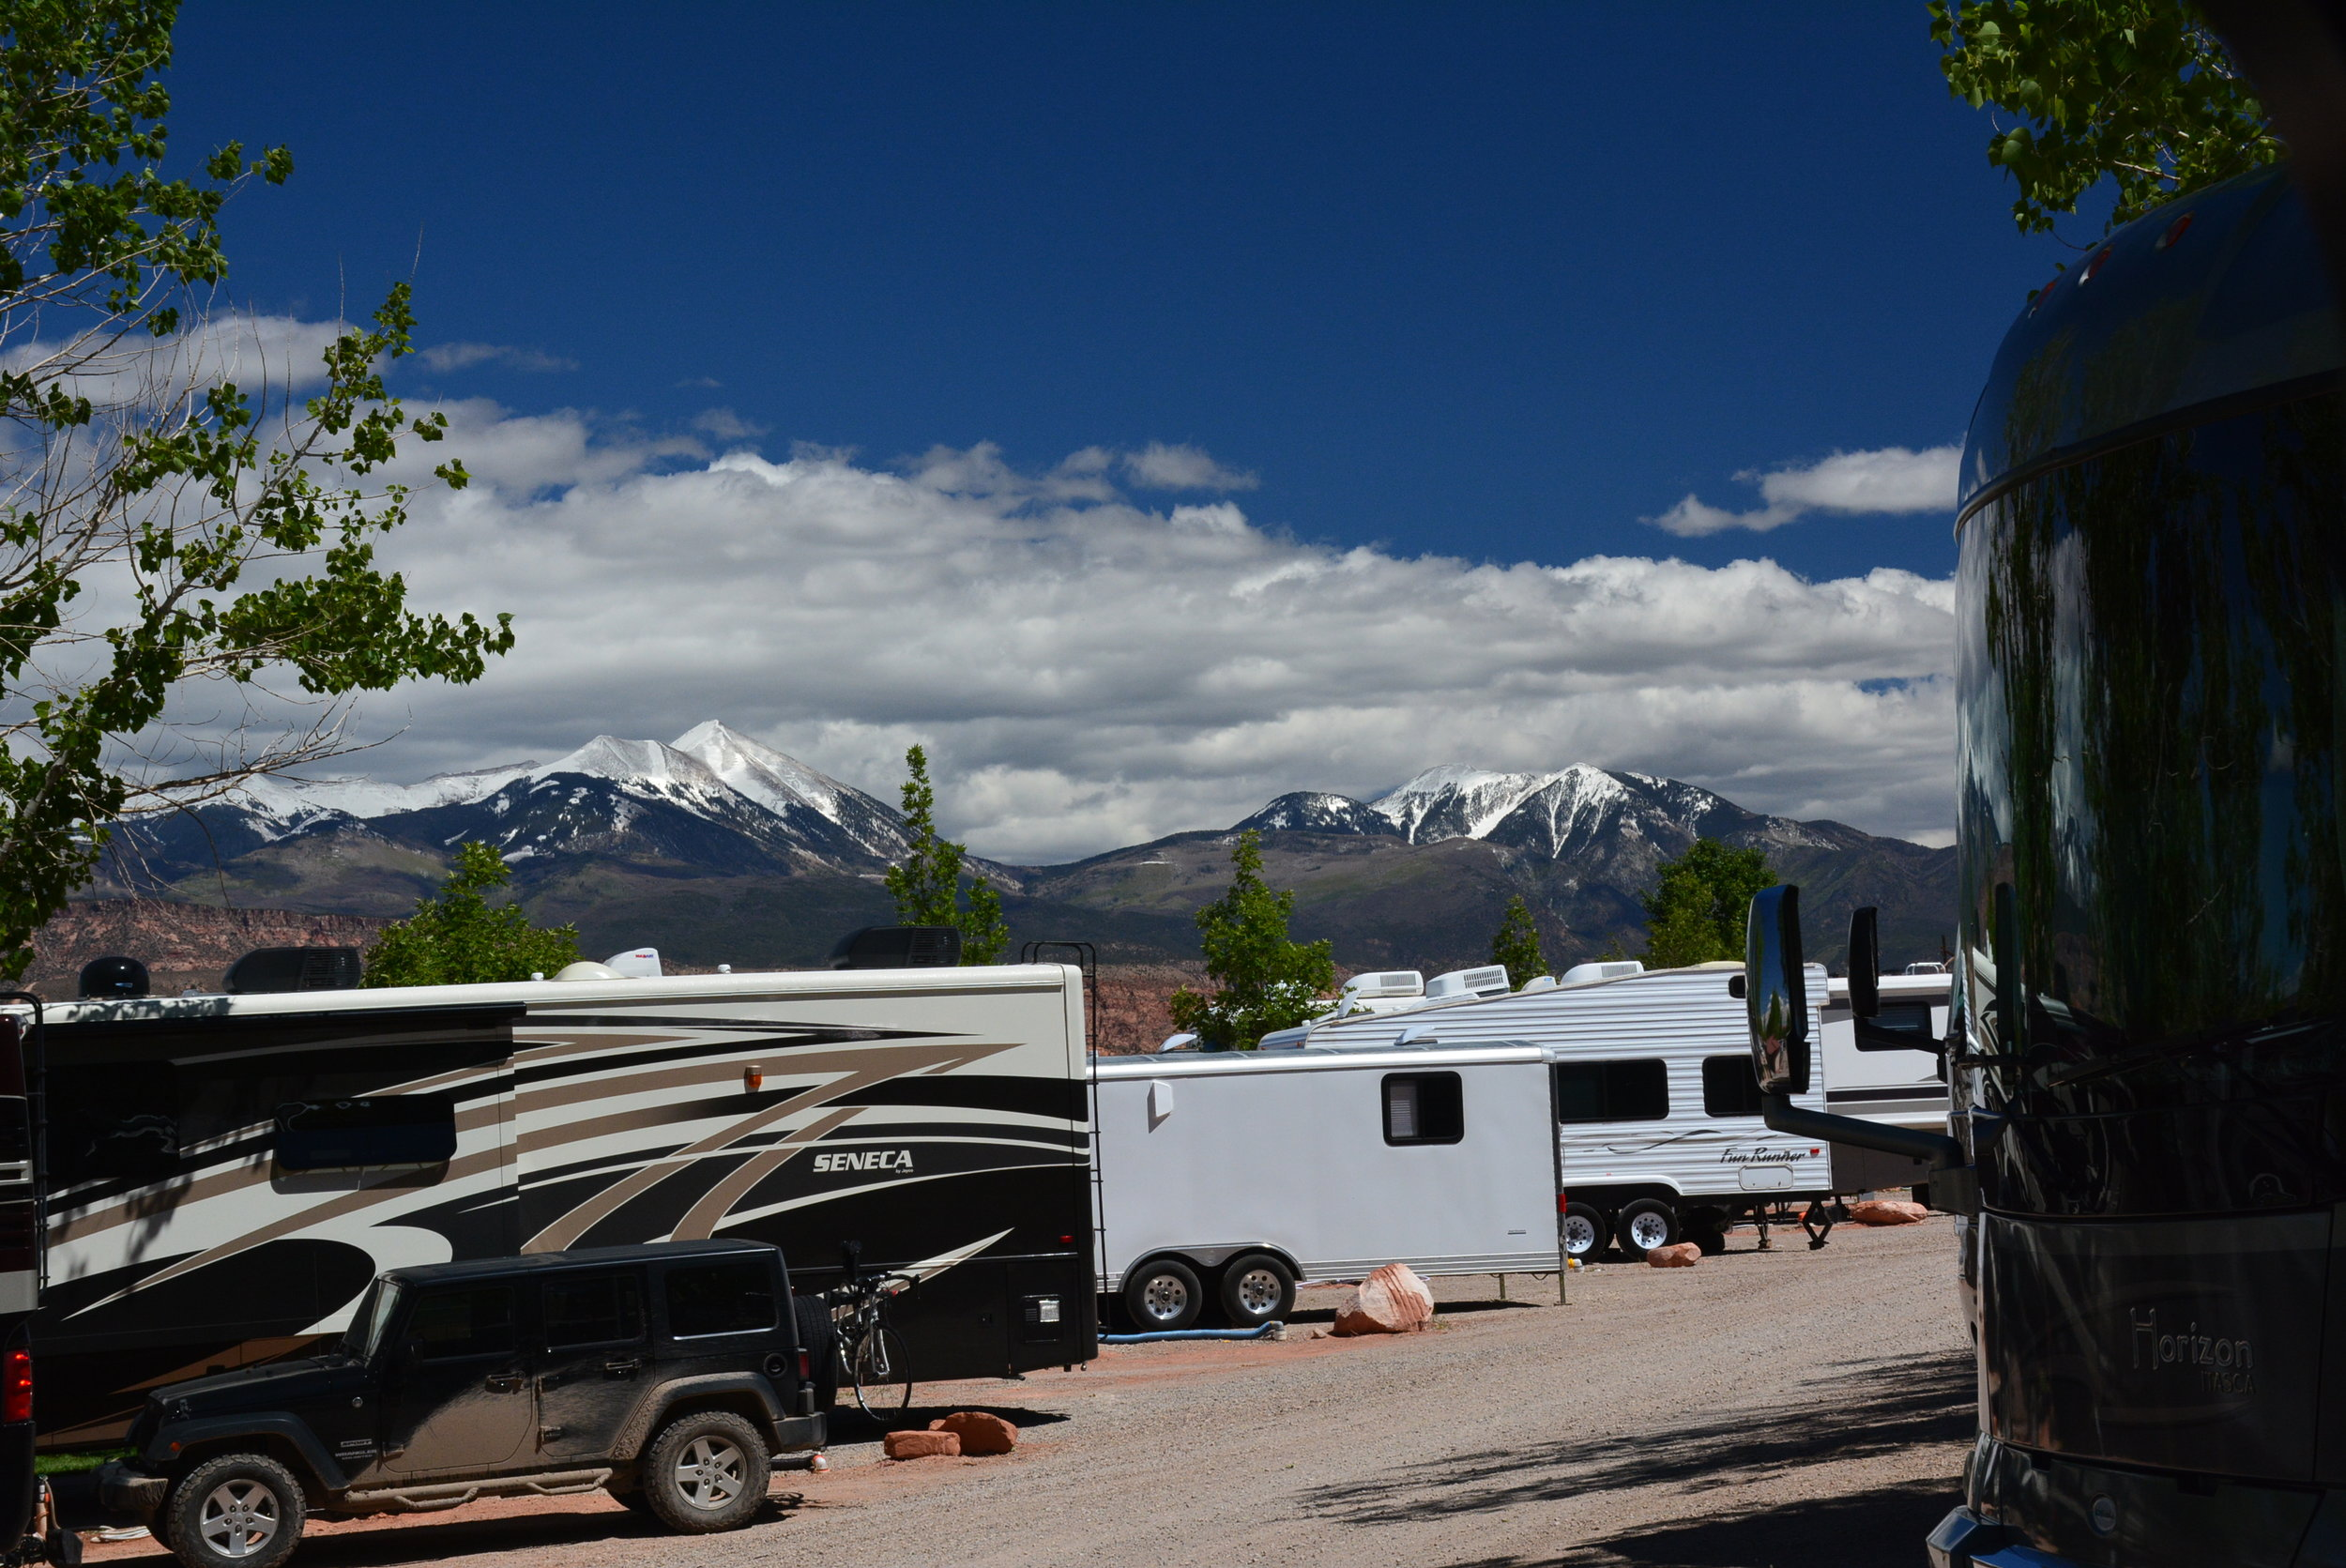 View from our spot in Spanish Trails RV Park, Moab Utah